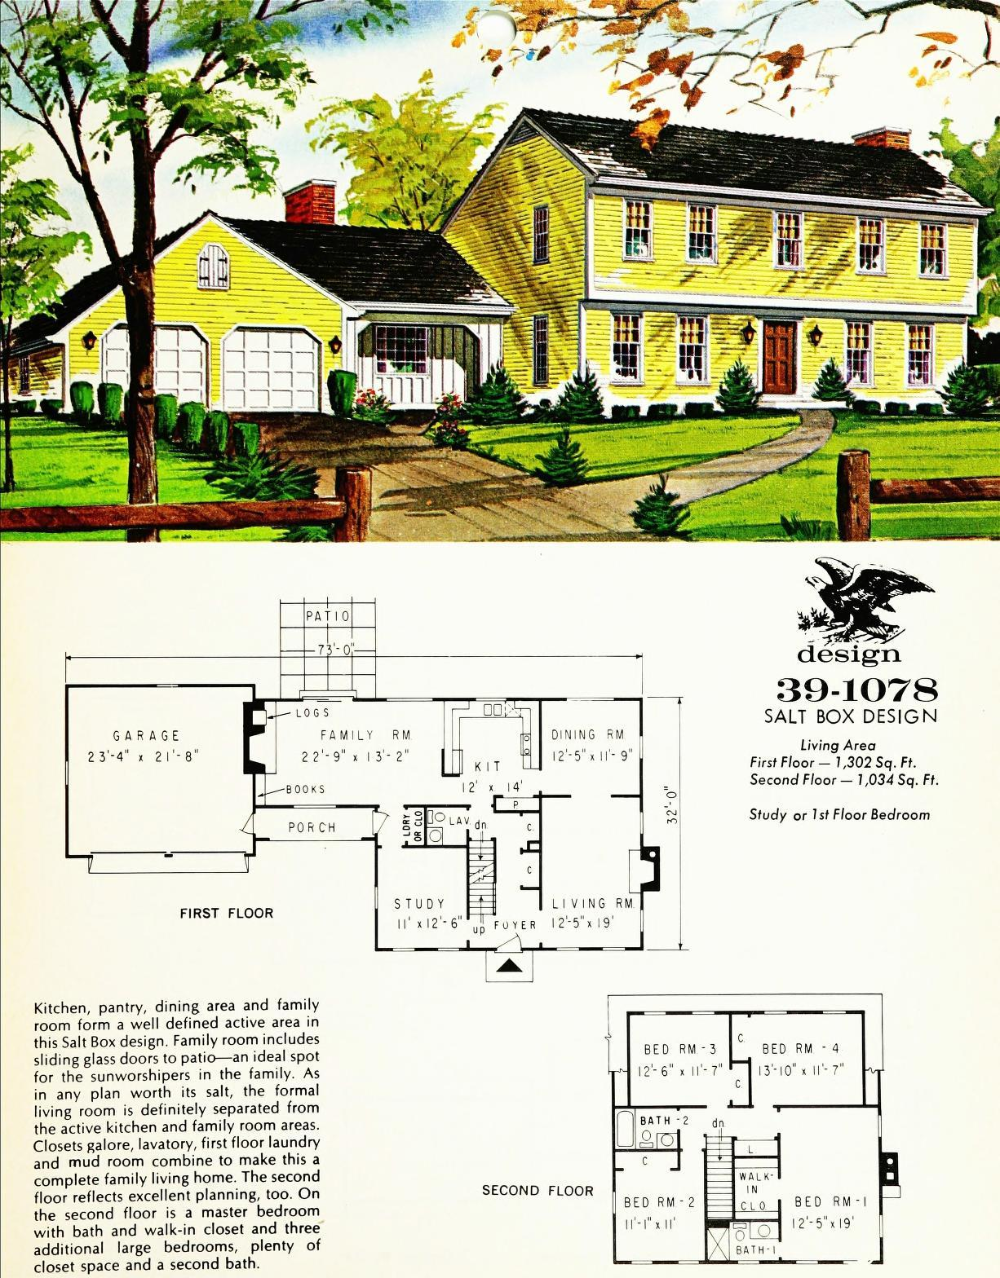 Floor Plan Prints Early American Colonial Home Plans Design No In 2021 Floor Plans Colonial House How To Plan